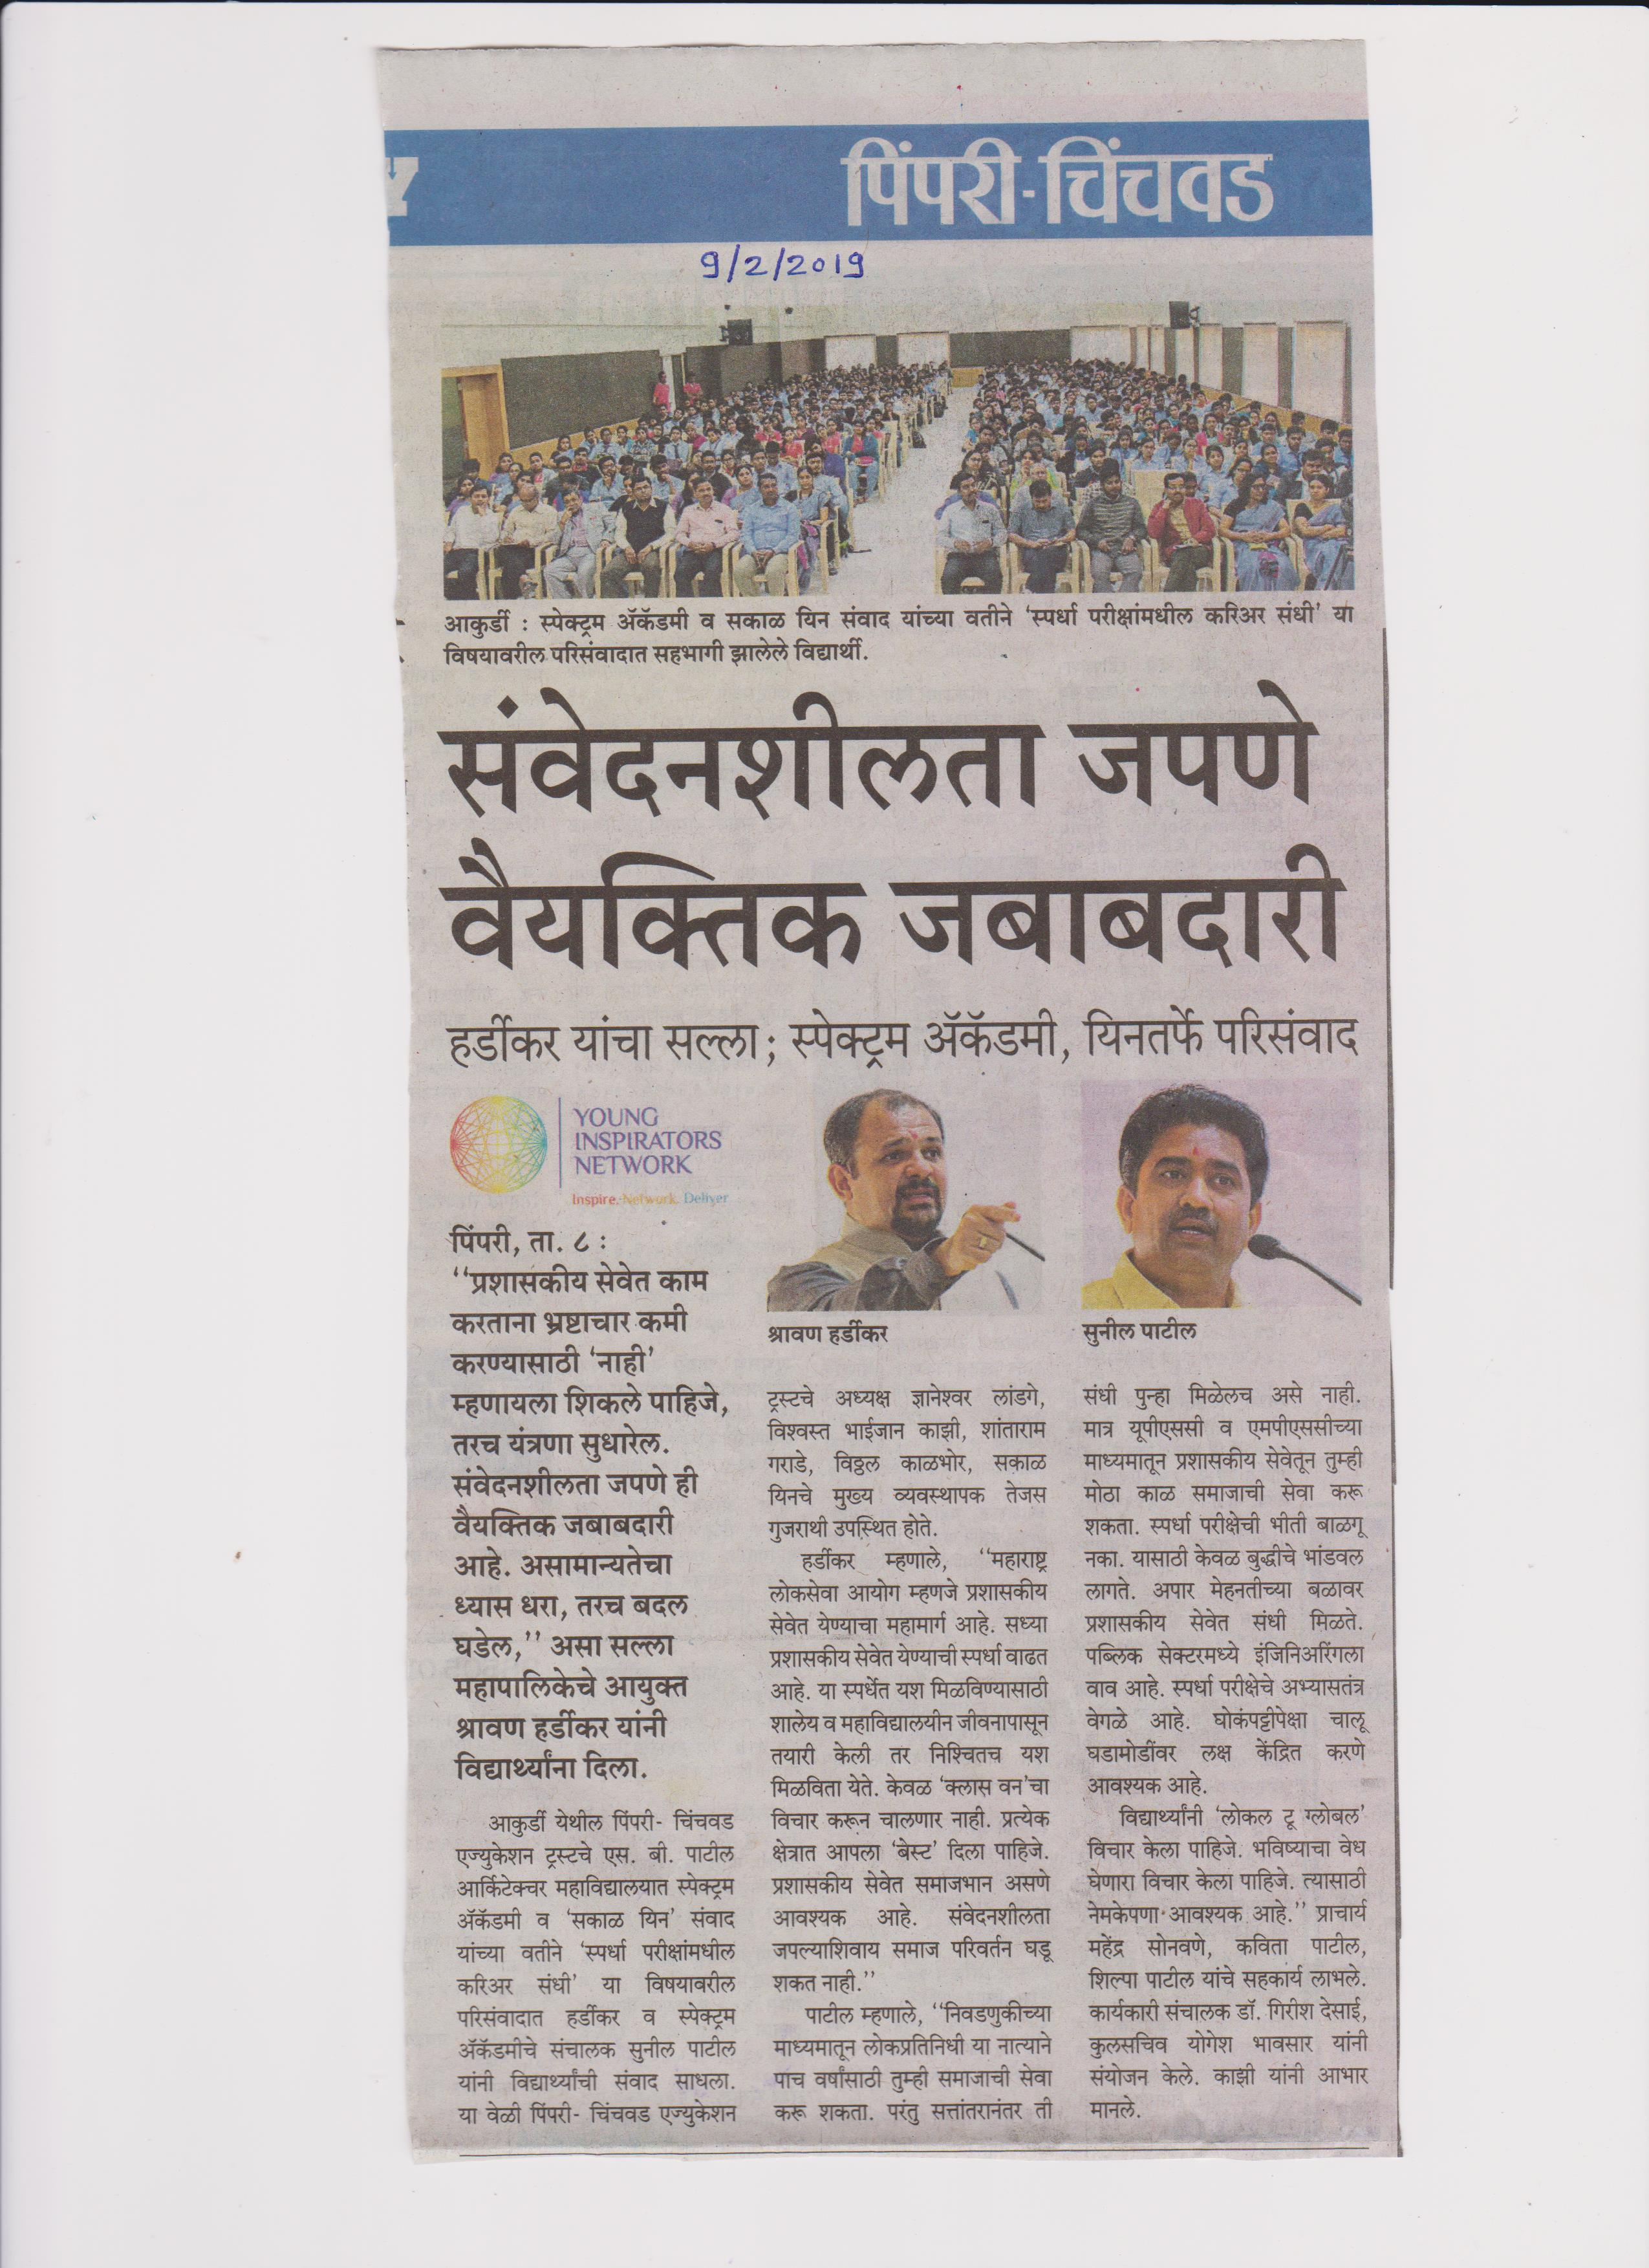 sb patil college of architecture & design is organized the various technical & cultural events for their students helps them to improve their skills